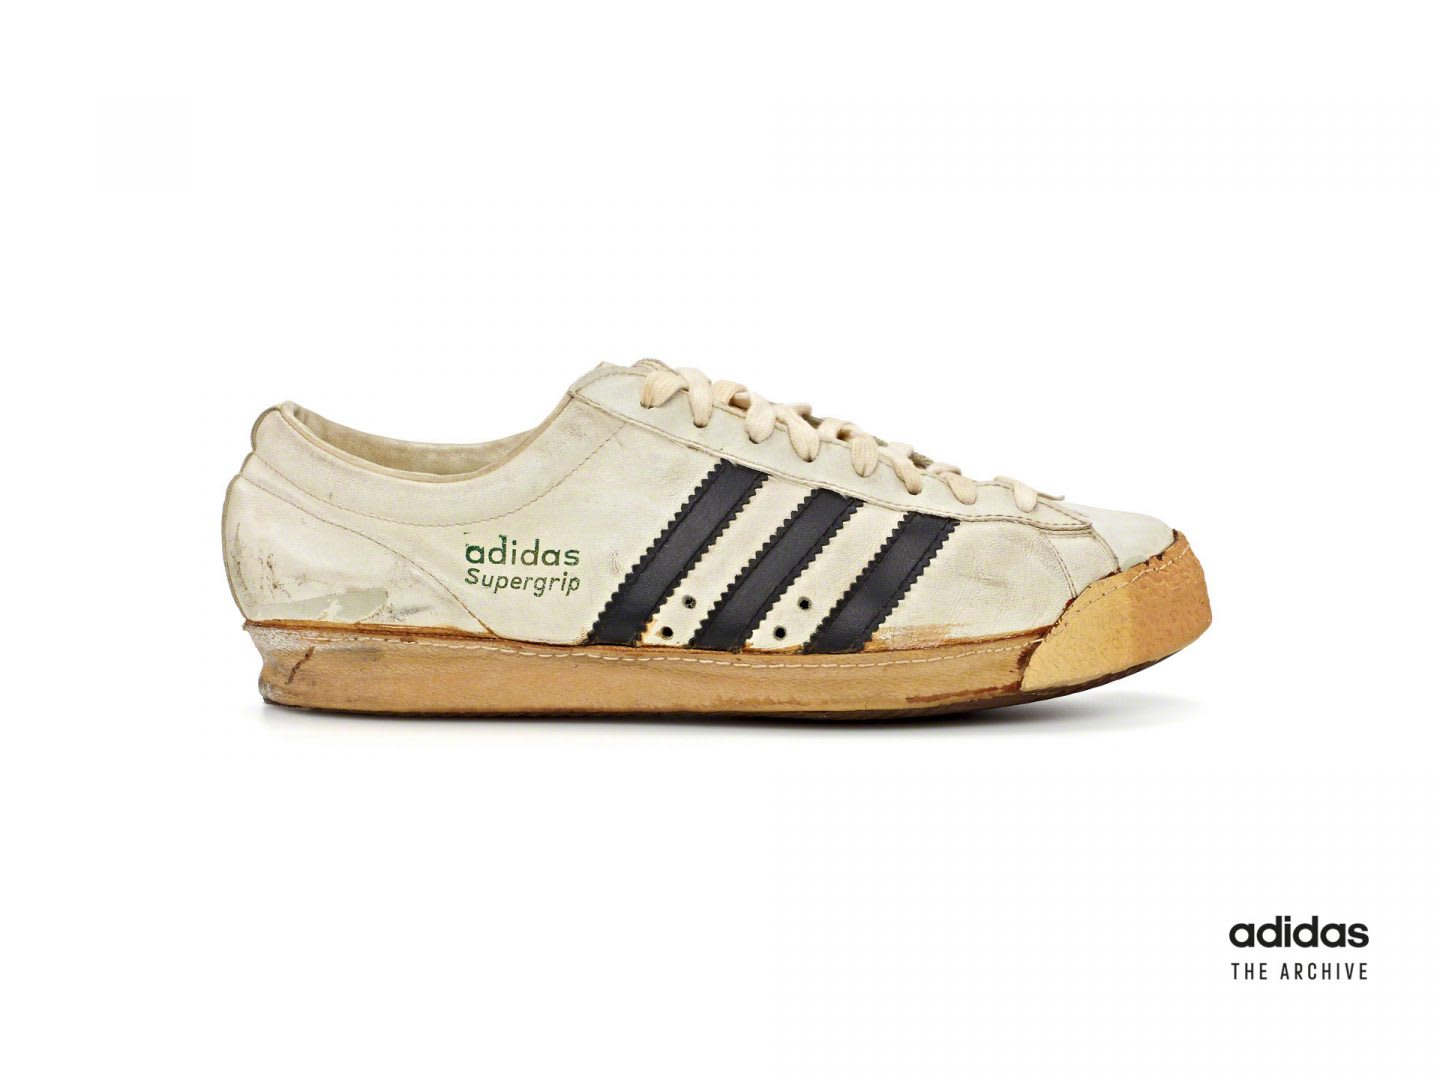 Image of supergrip shoe which is a white leather shoe with three black stripes on the side of the shoe.